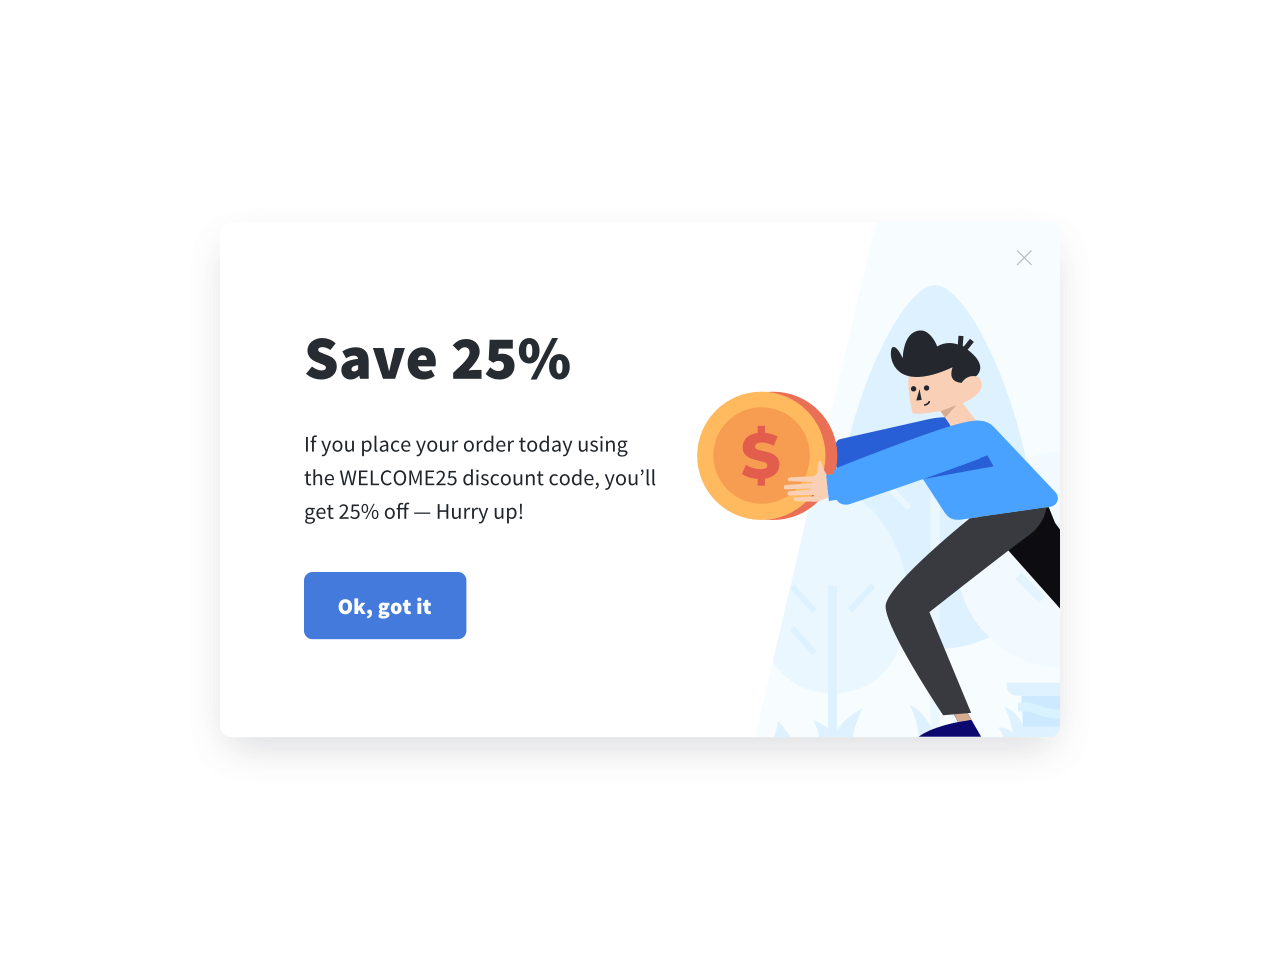 Modal popup with a discount offer as a lead magnet